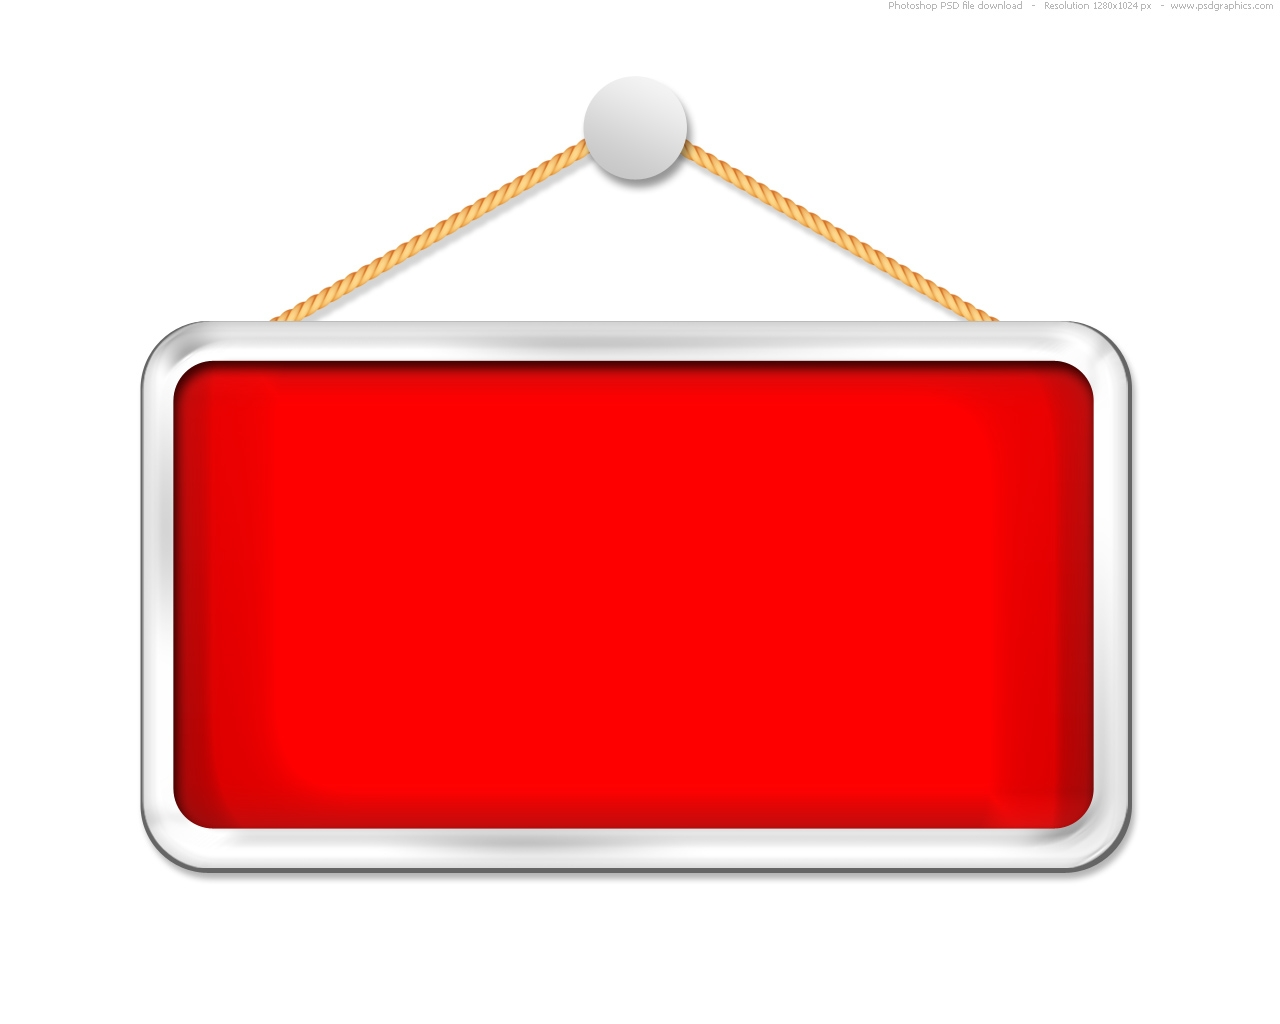 Blank hanging sign clipart.